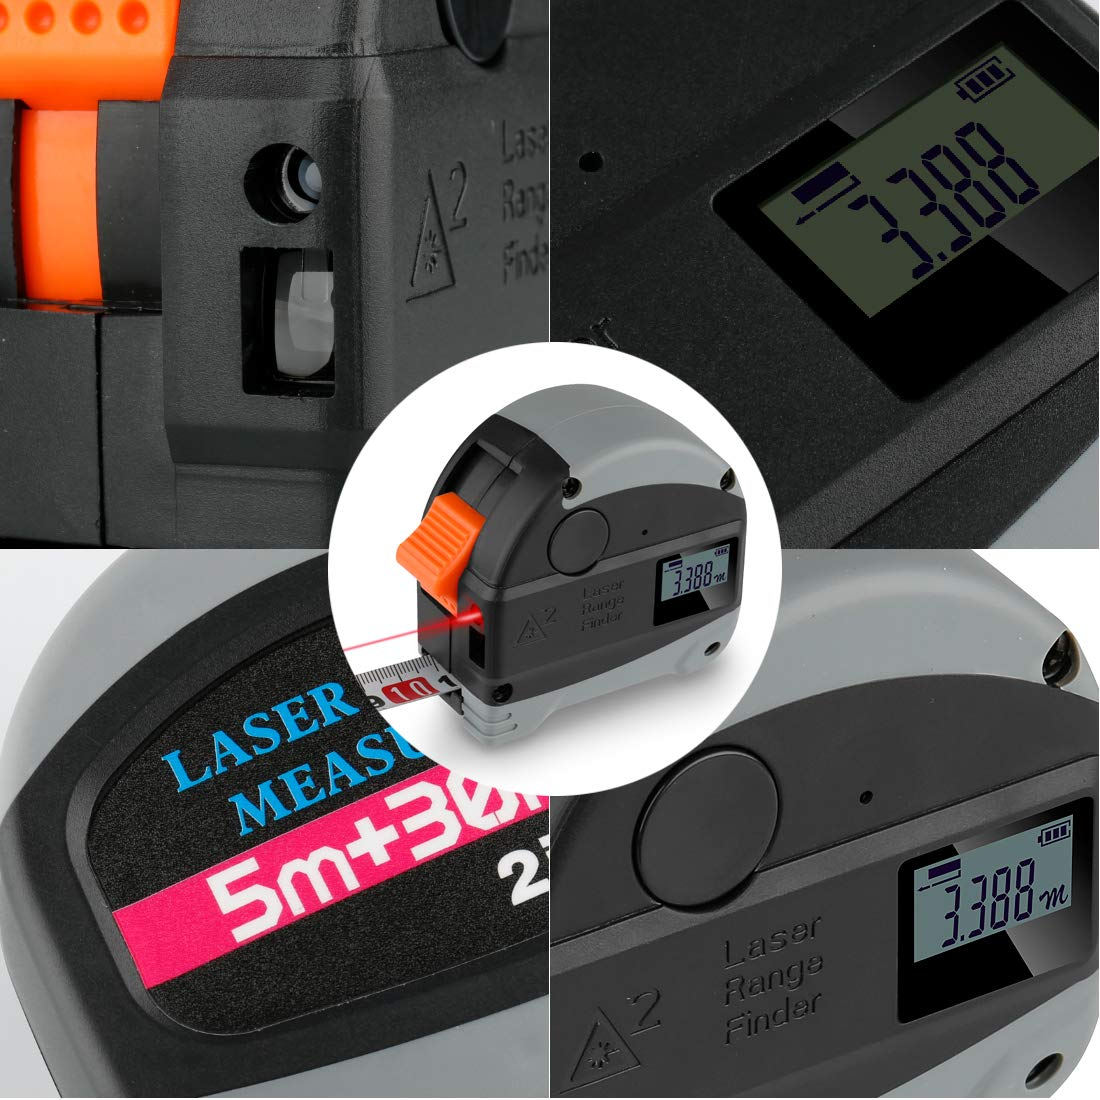 Ameter 2 in 1 Tpae Measurement Tools- Tape Measure 5m/16ft With Rechargeable laser line Digital Distance Measure 30m/98ft With LCD Display metric,inches, foot Electronic Tape Measuring Tool by Ameter (Image #8)